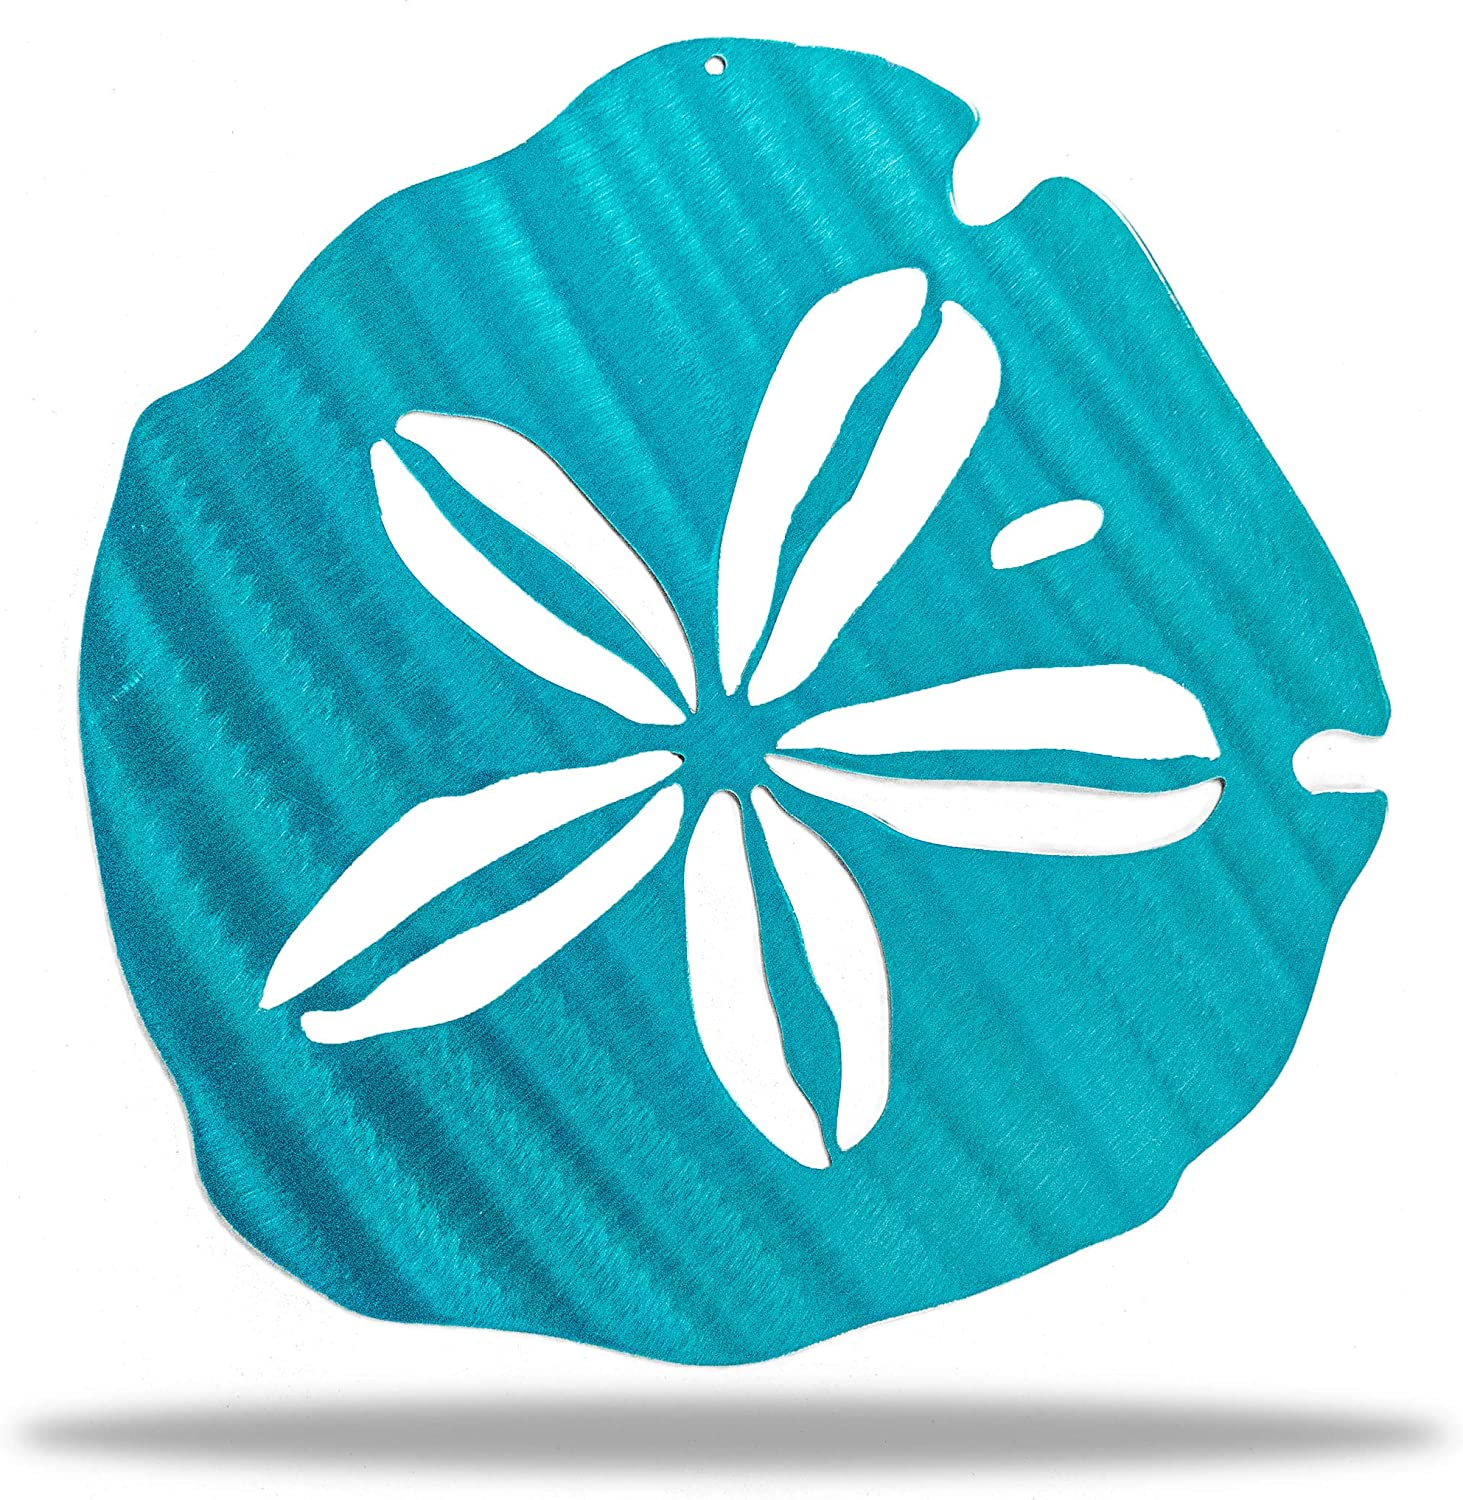 Riverside Designs Sand Dollar Metal Wall Decor | Weather Resistant | 11.5 inches x 12 inches | Steel Sign | Coastal Beach Decor (Translucent Teal)